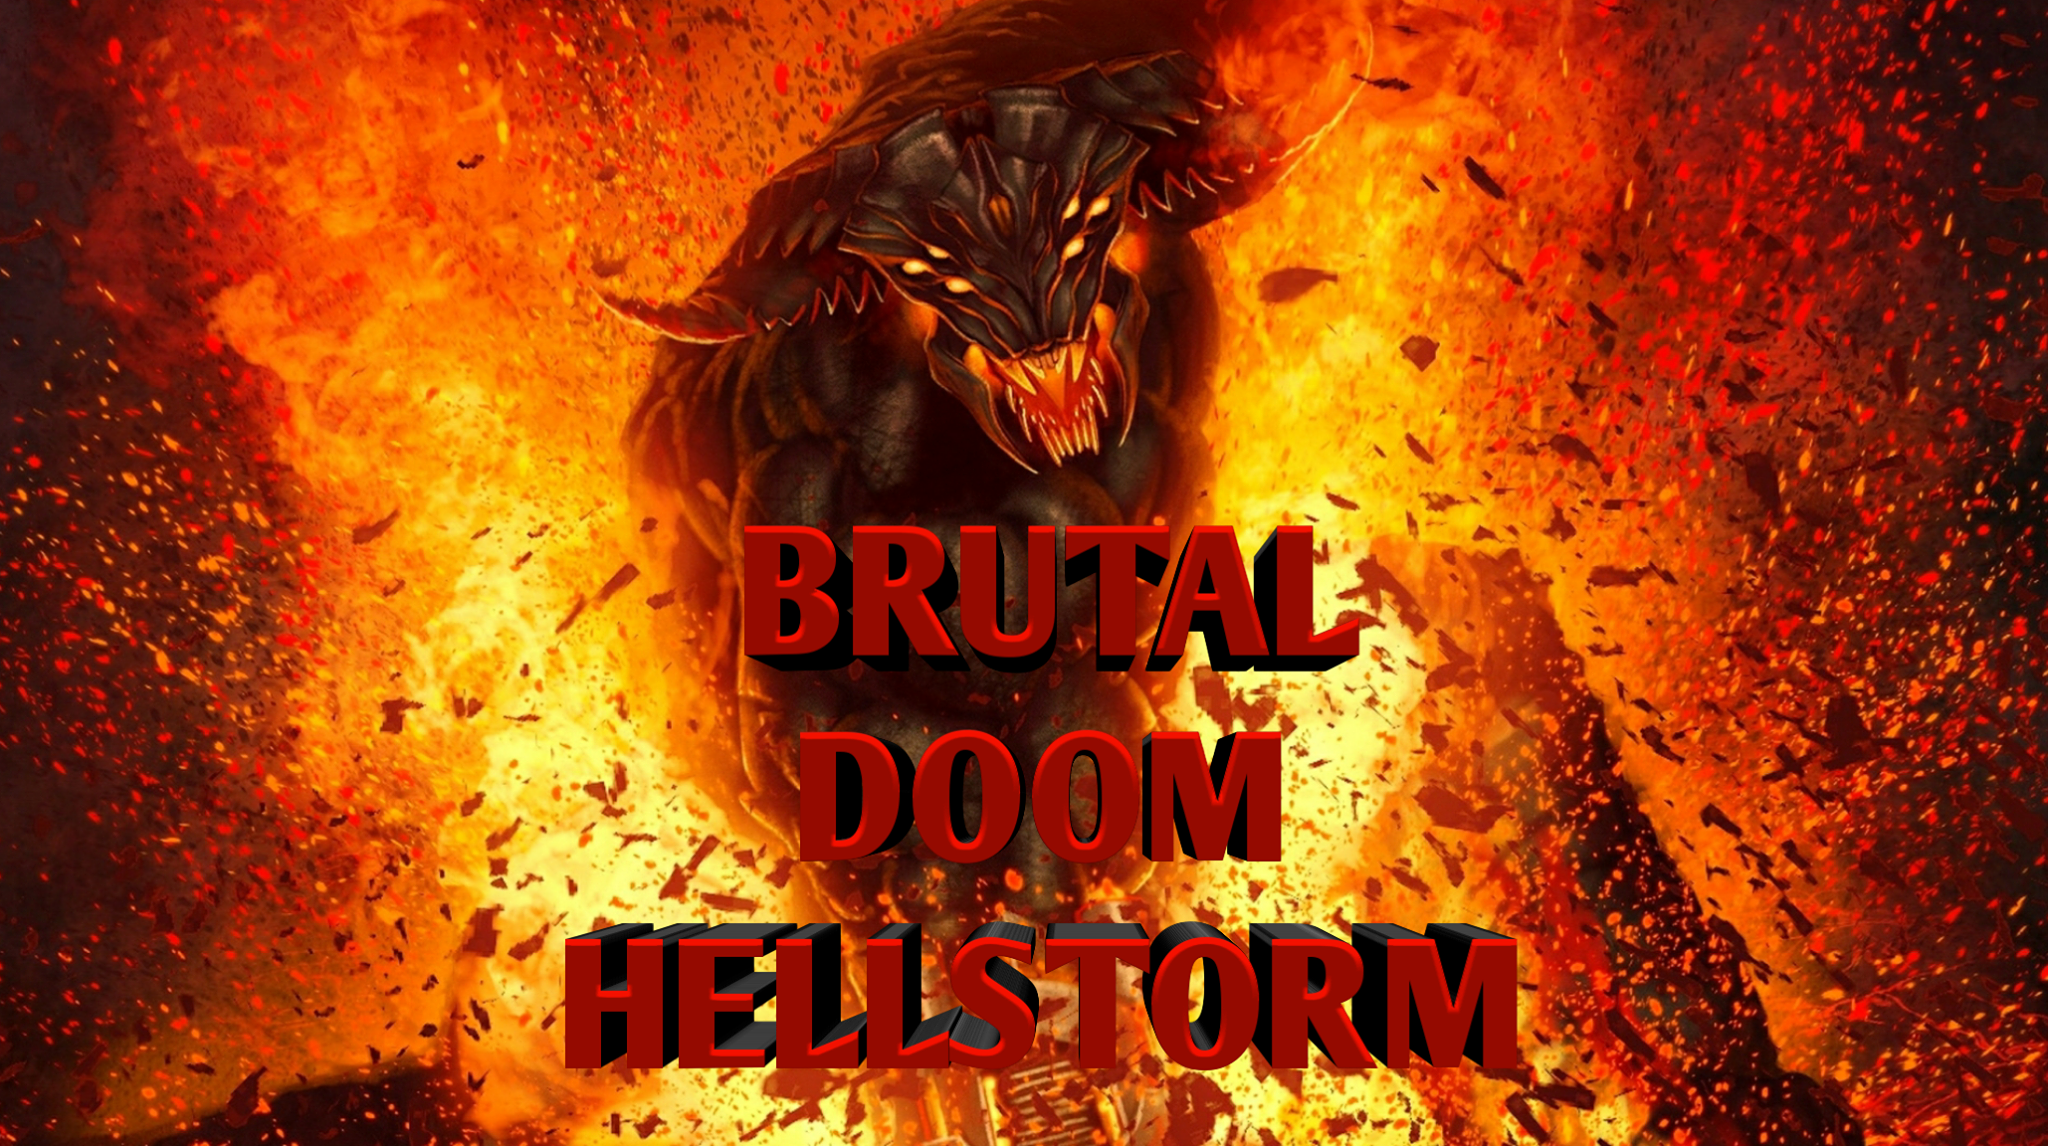 BRUTAL DOOM SAG HELLSTORM V7 ADDON FOR BRUTAL DOOM file - Mod DB